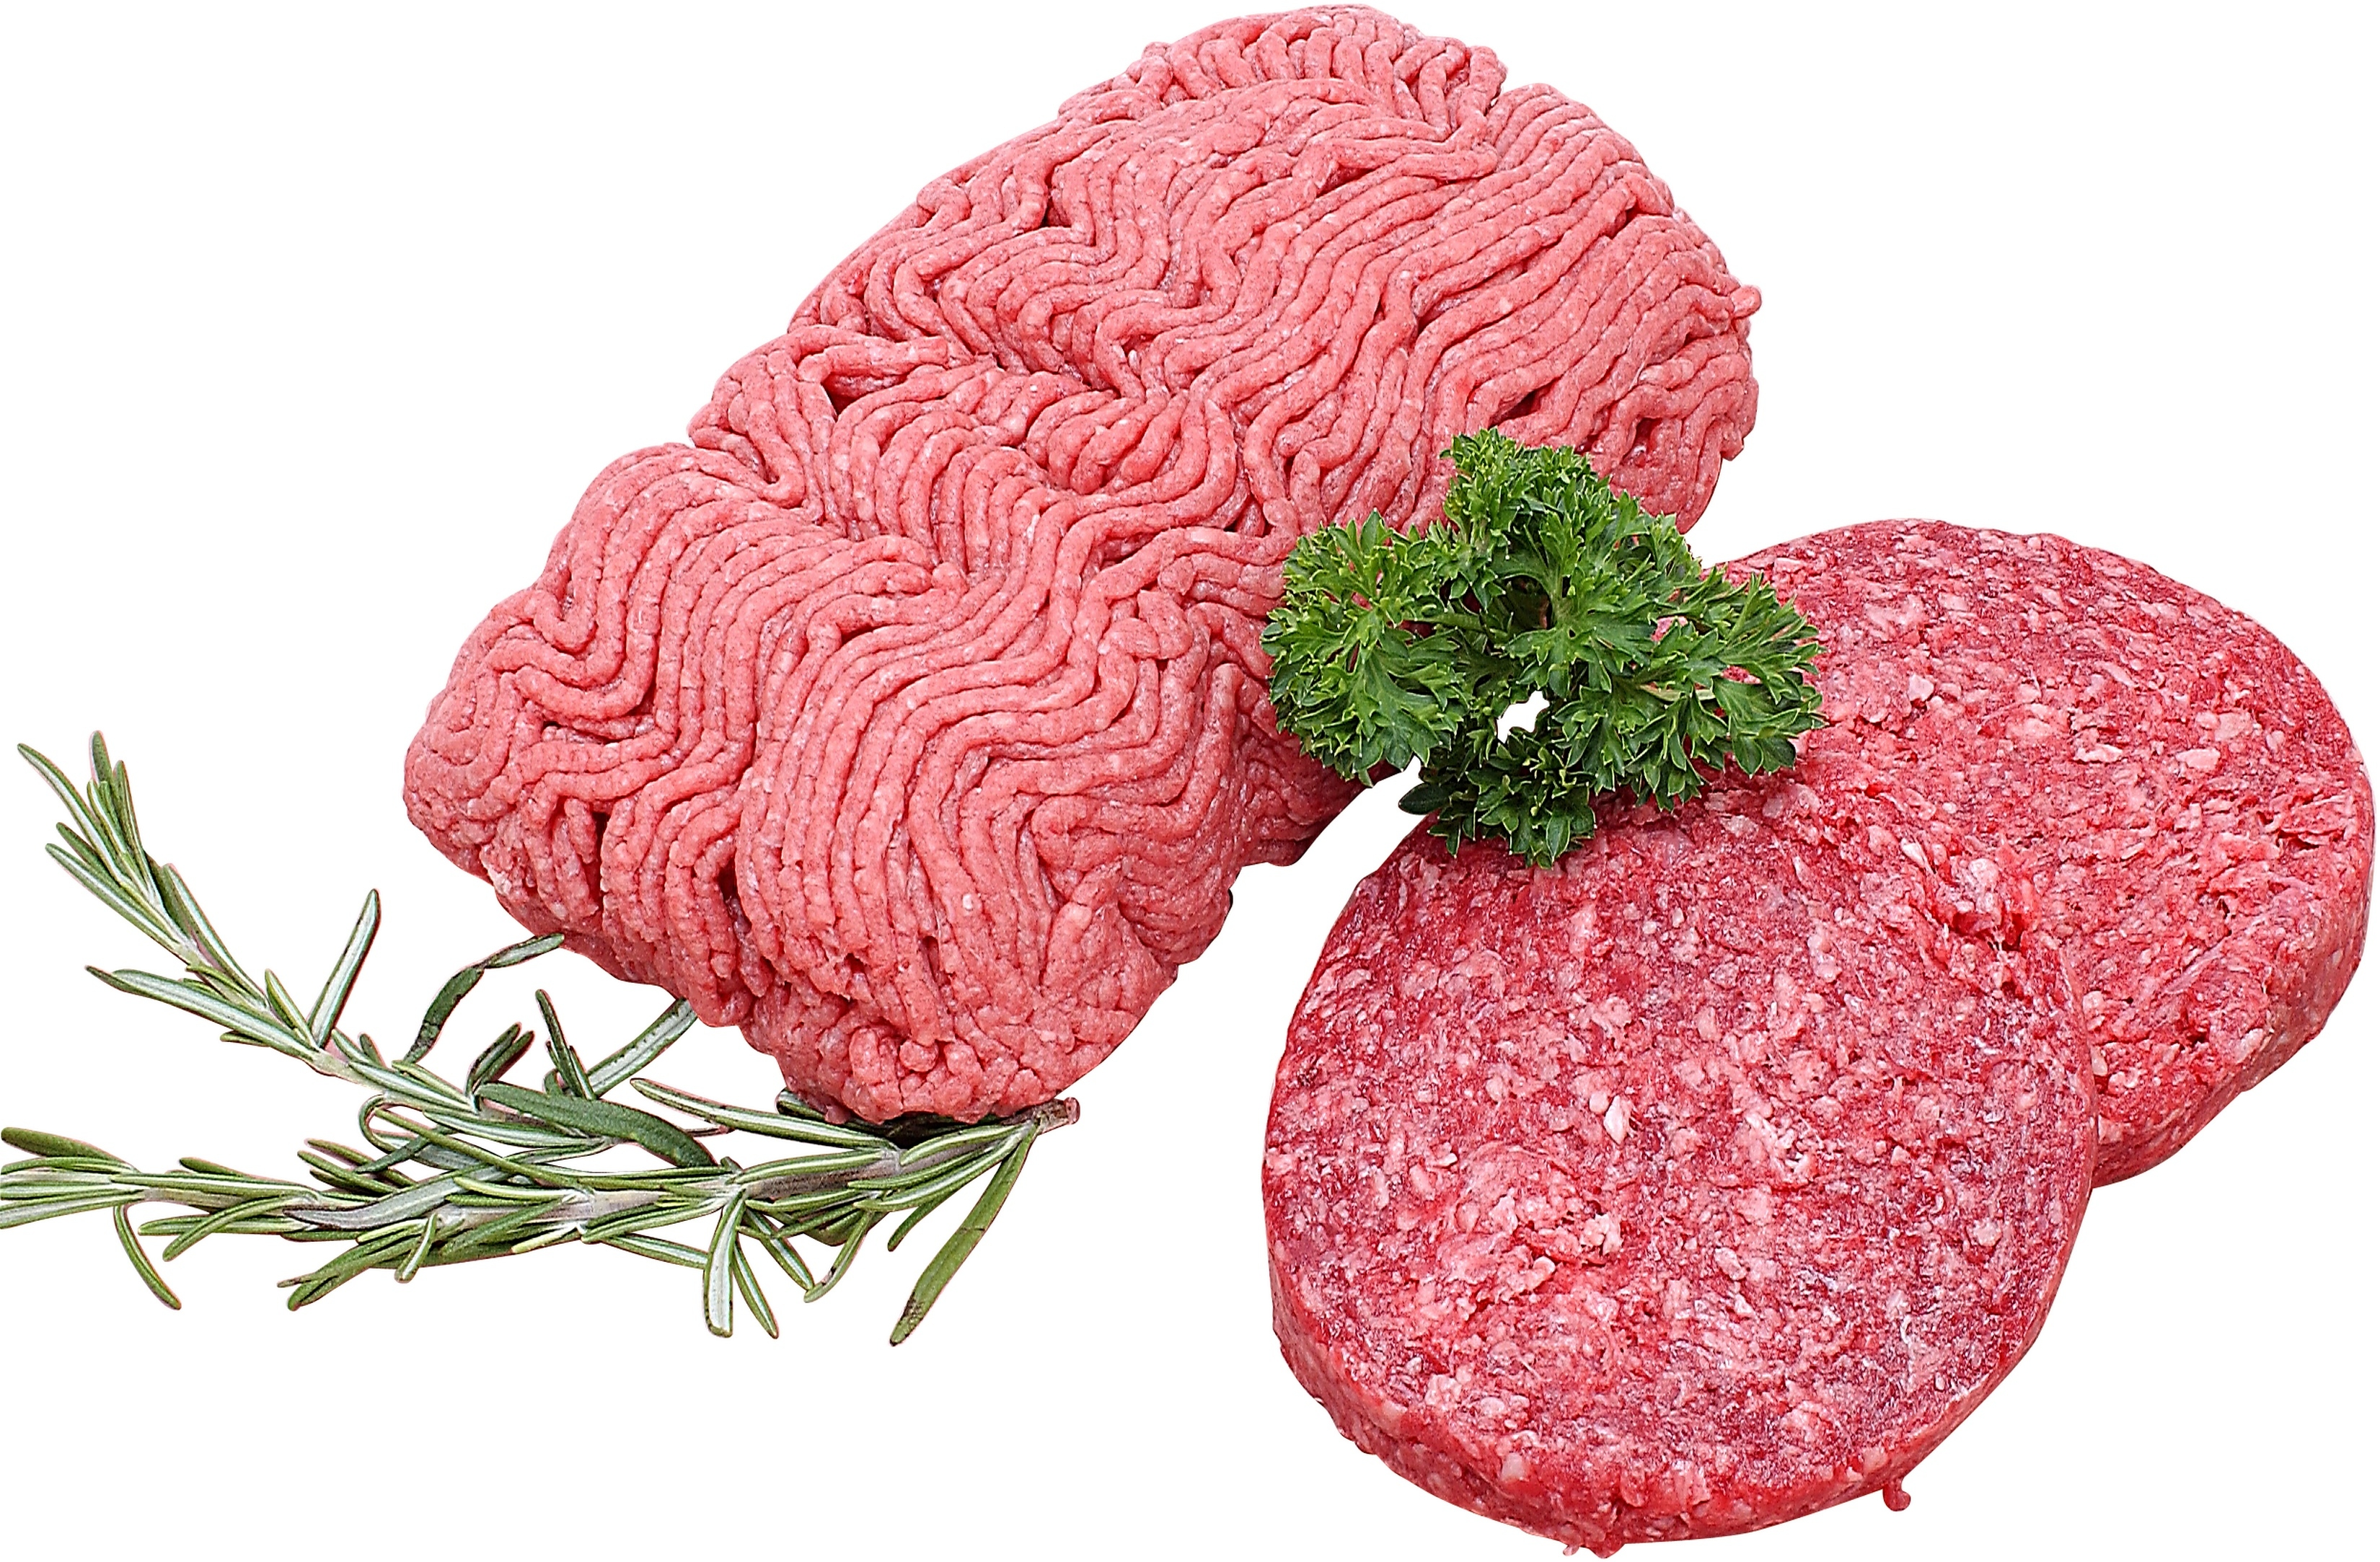 Freshly packaged ground beef typically does not contain sodium nitrite.